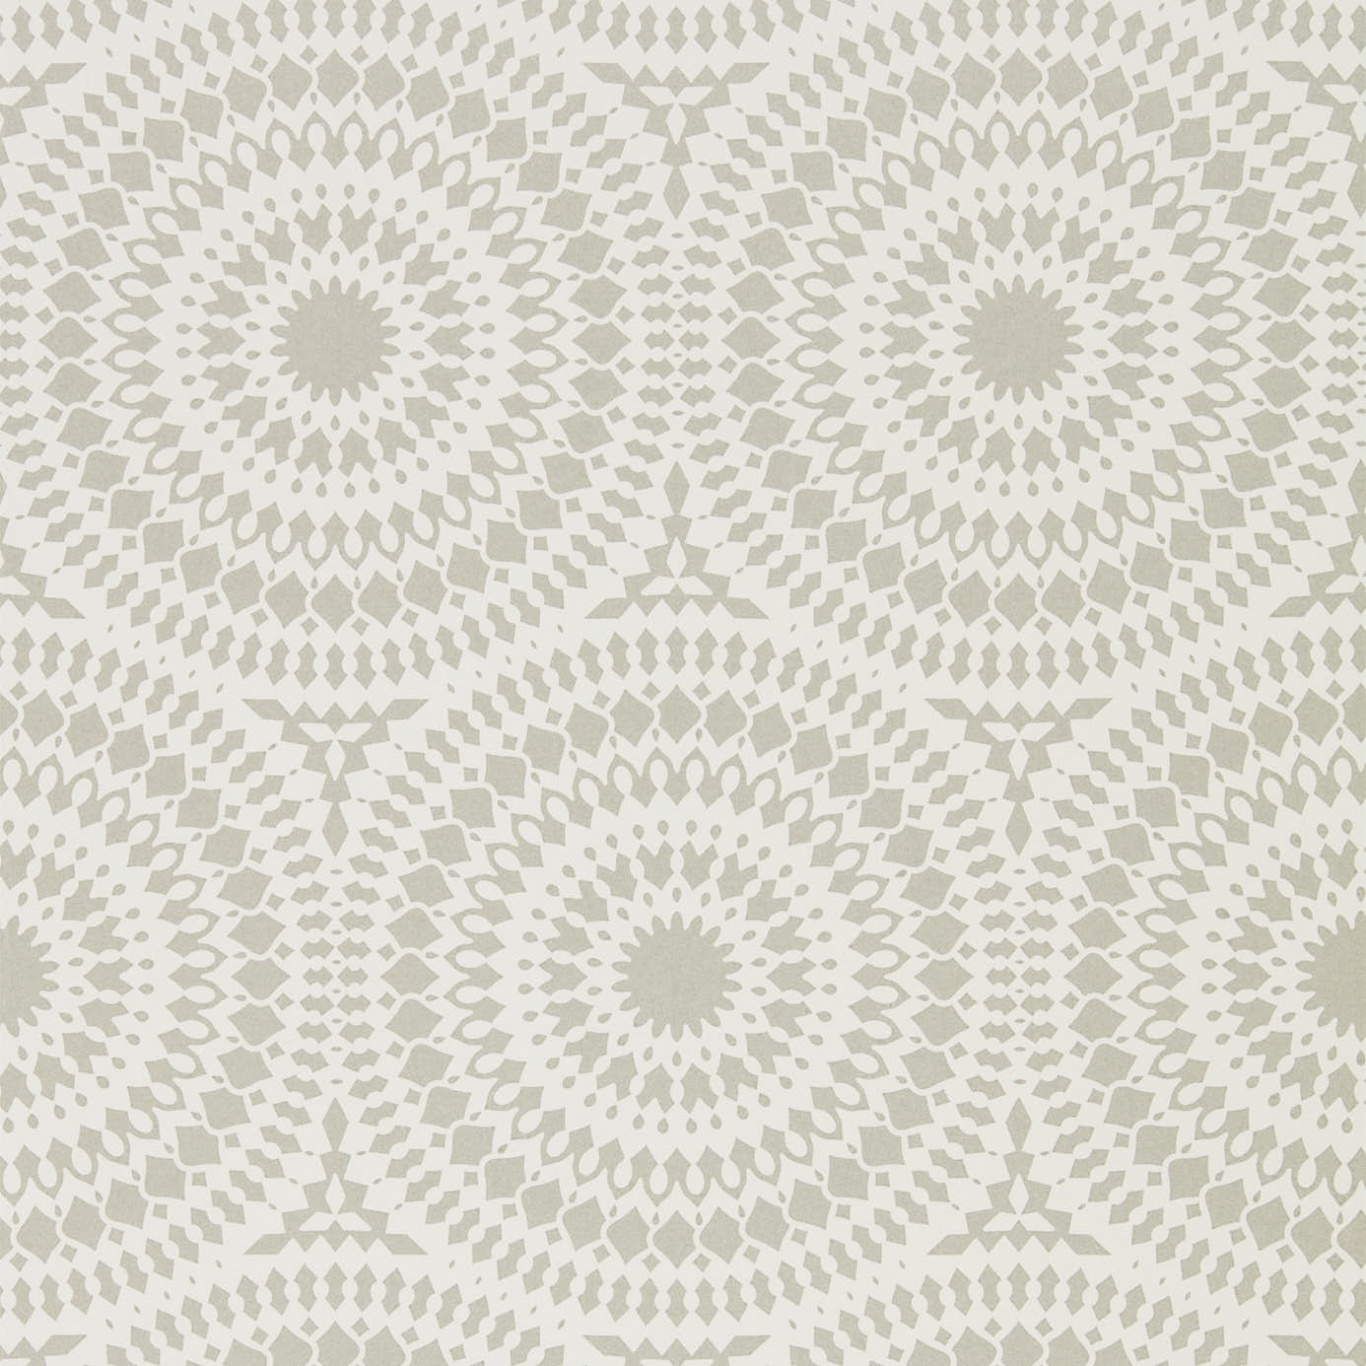 Image of Harlequin Cadencia Gold Wallpaper 111884